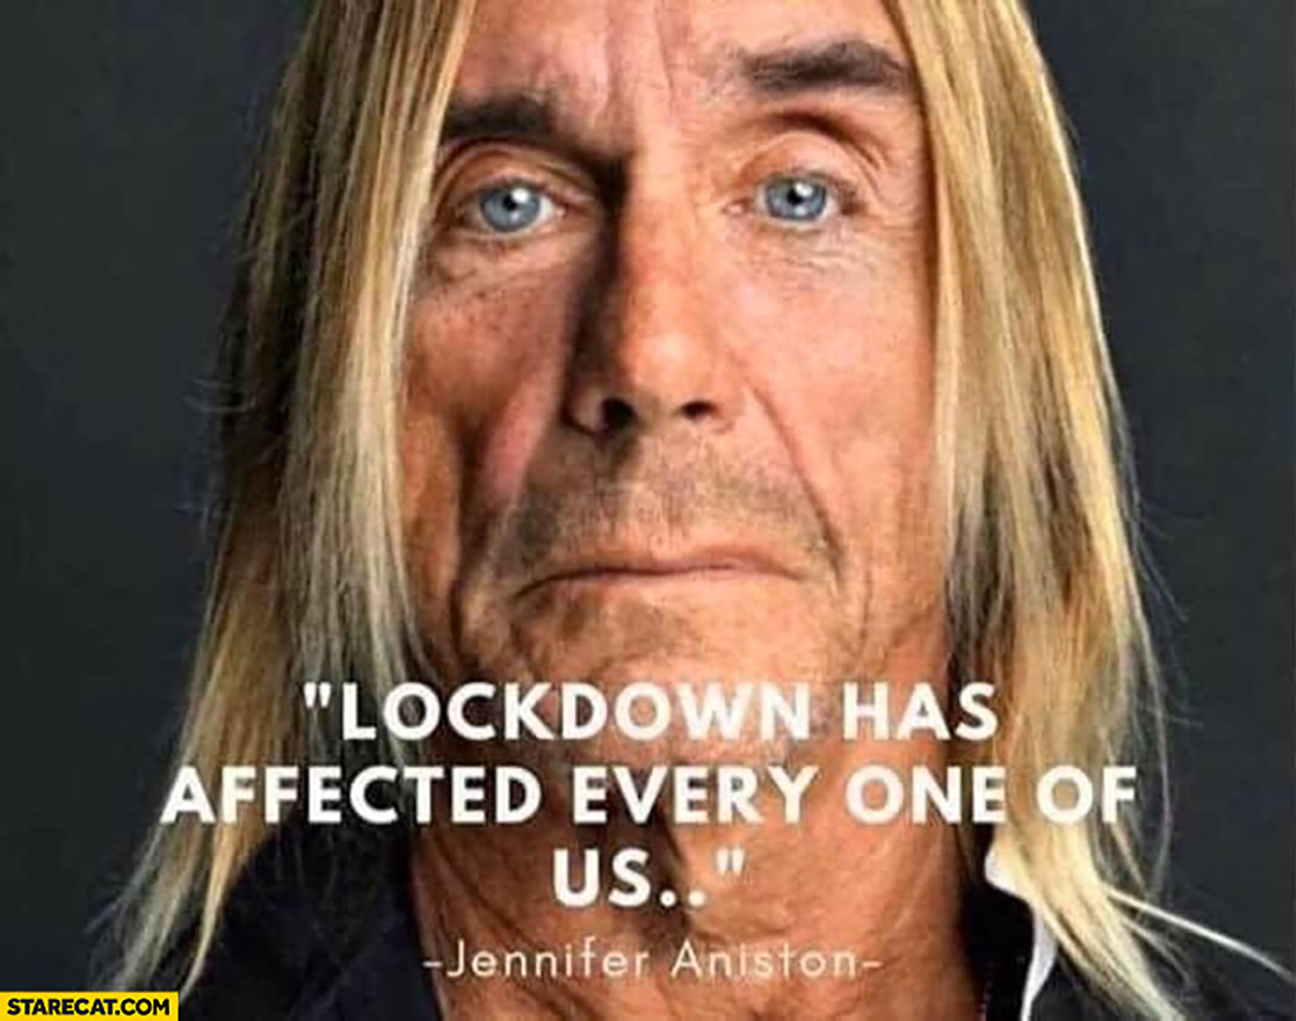 lockdown-has-affected-every-one-of-us-jennifer-aniston-iggy-pop